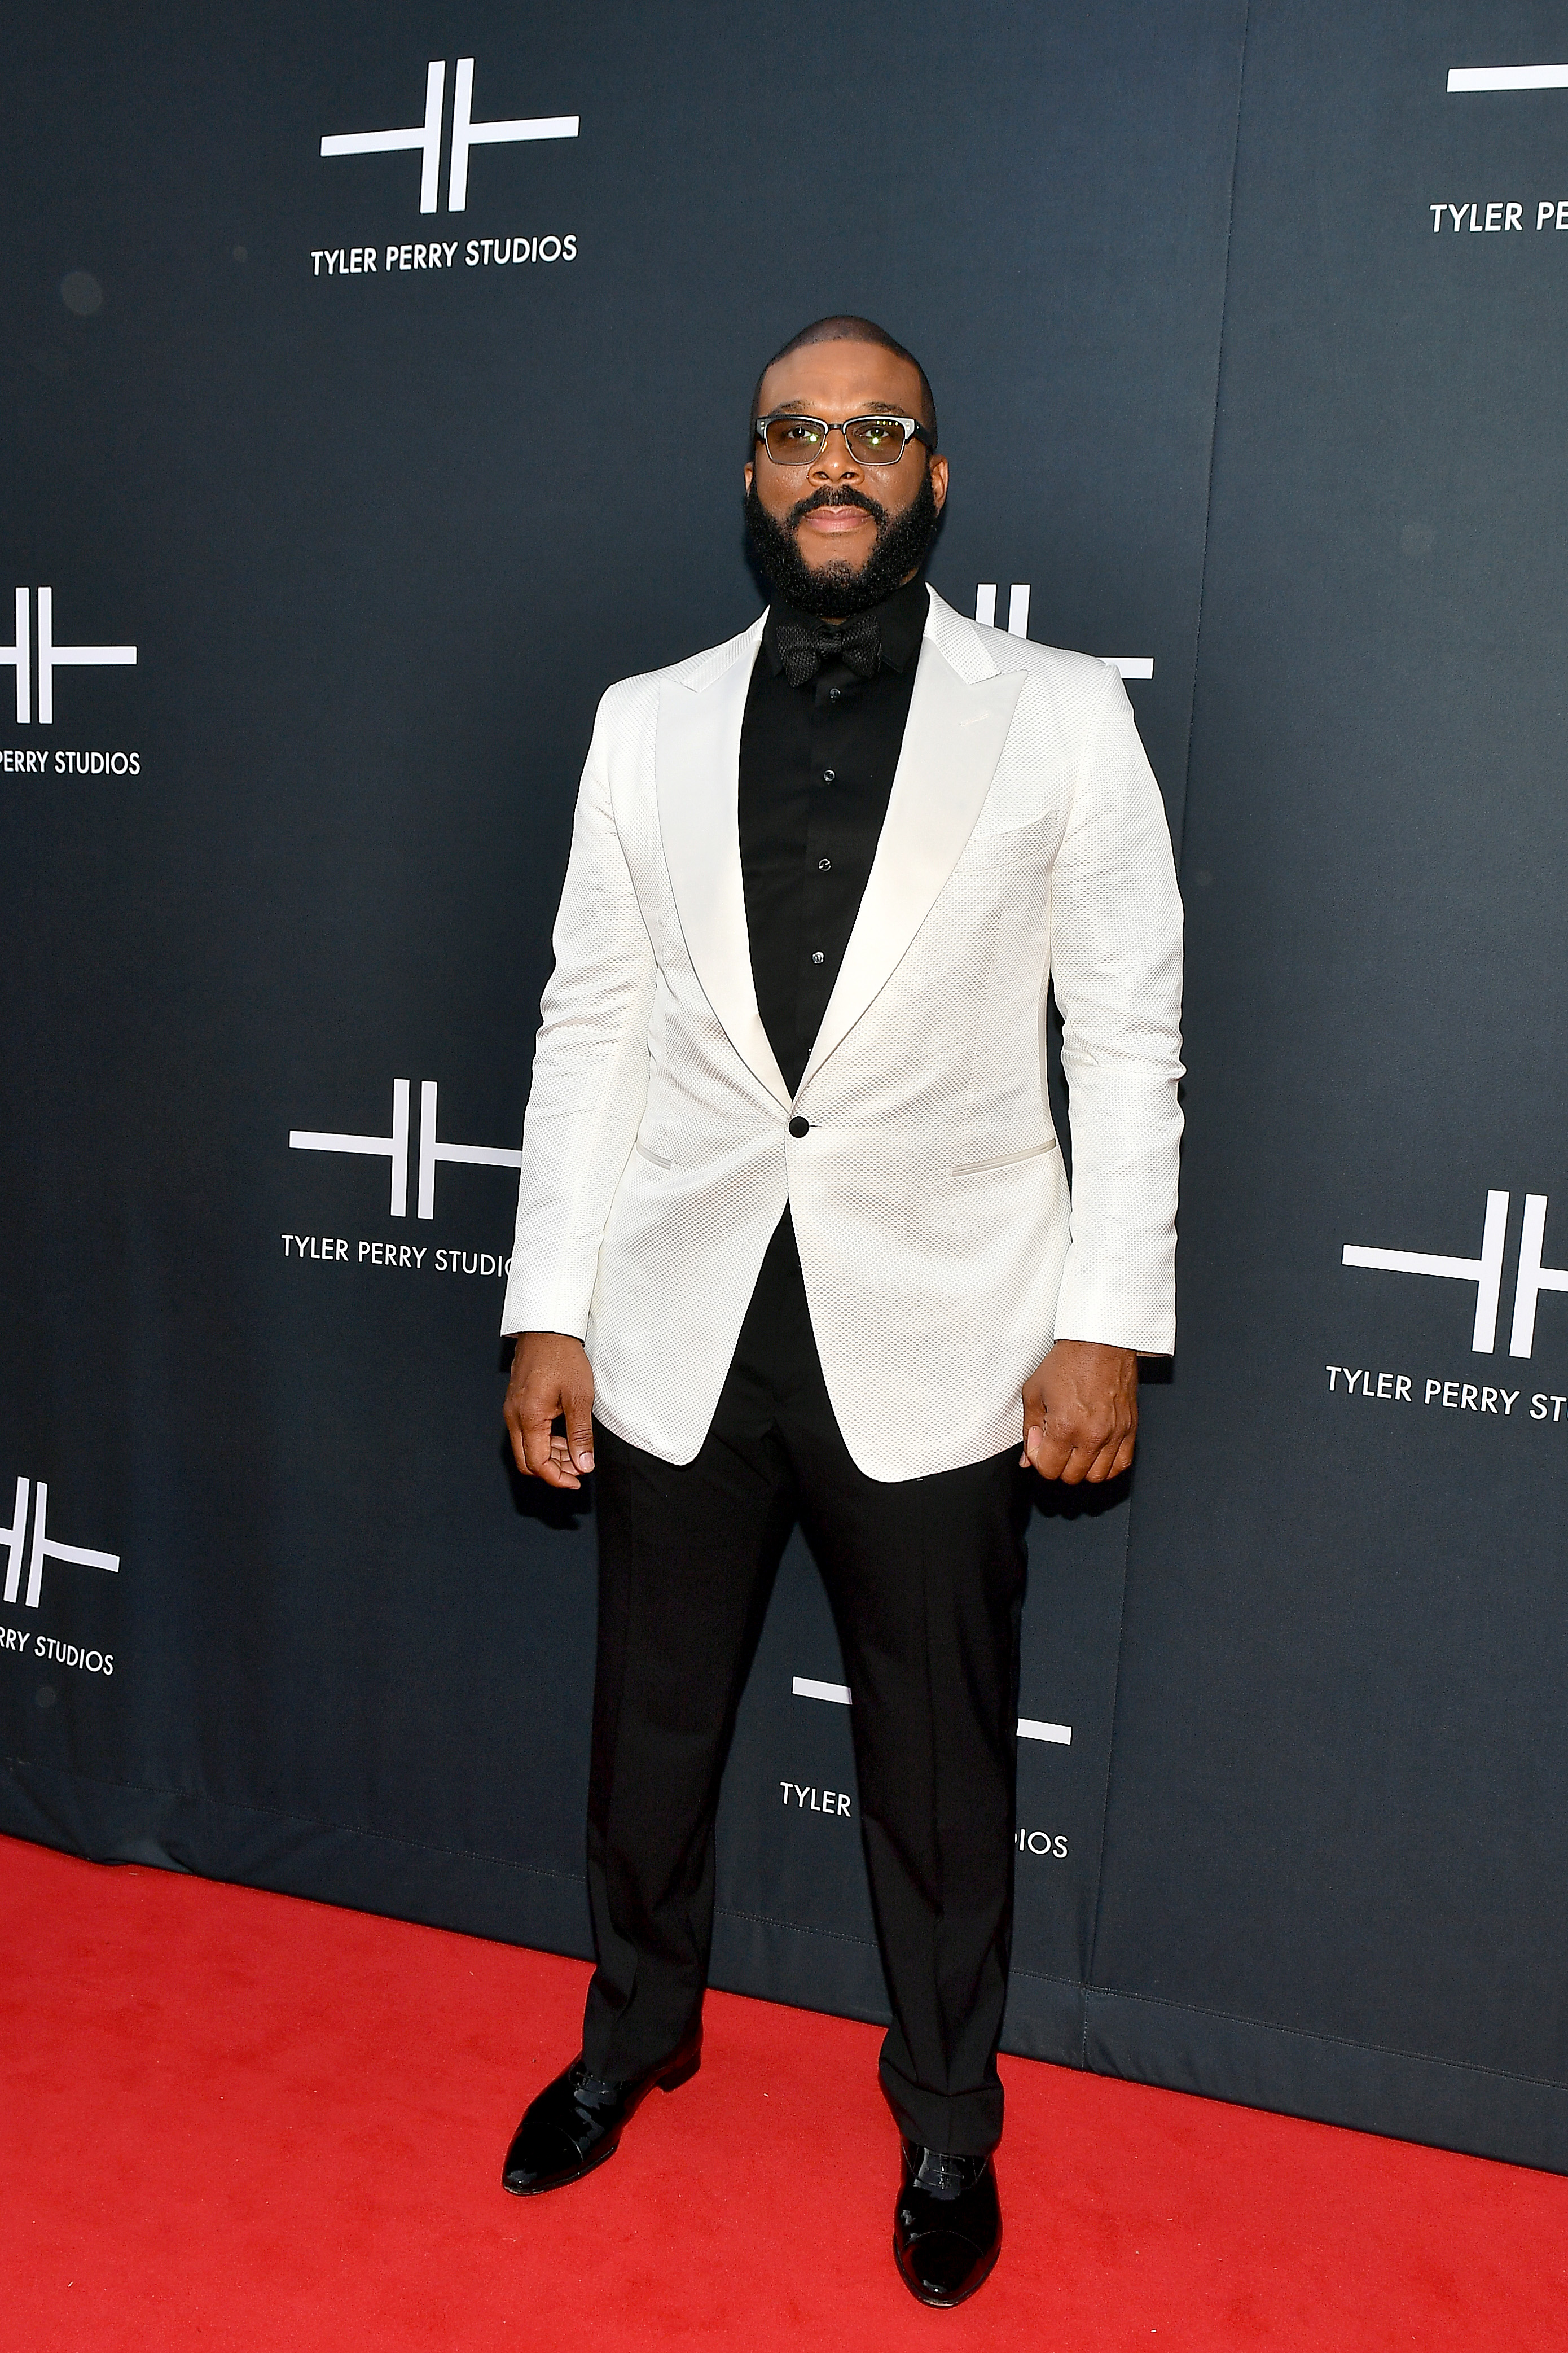 Red Carpet Arrivals: Tyler Perry Studios Grand Opening Gala